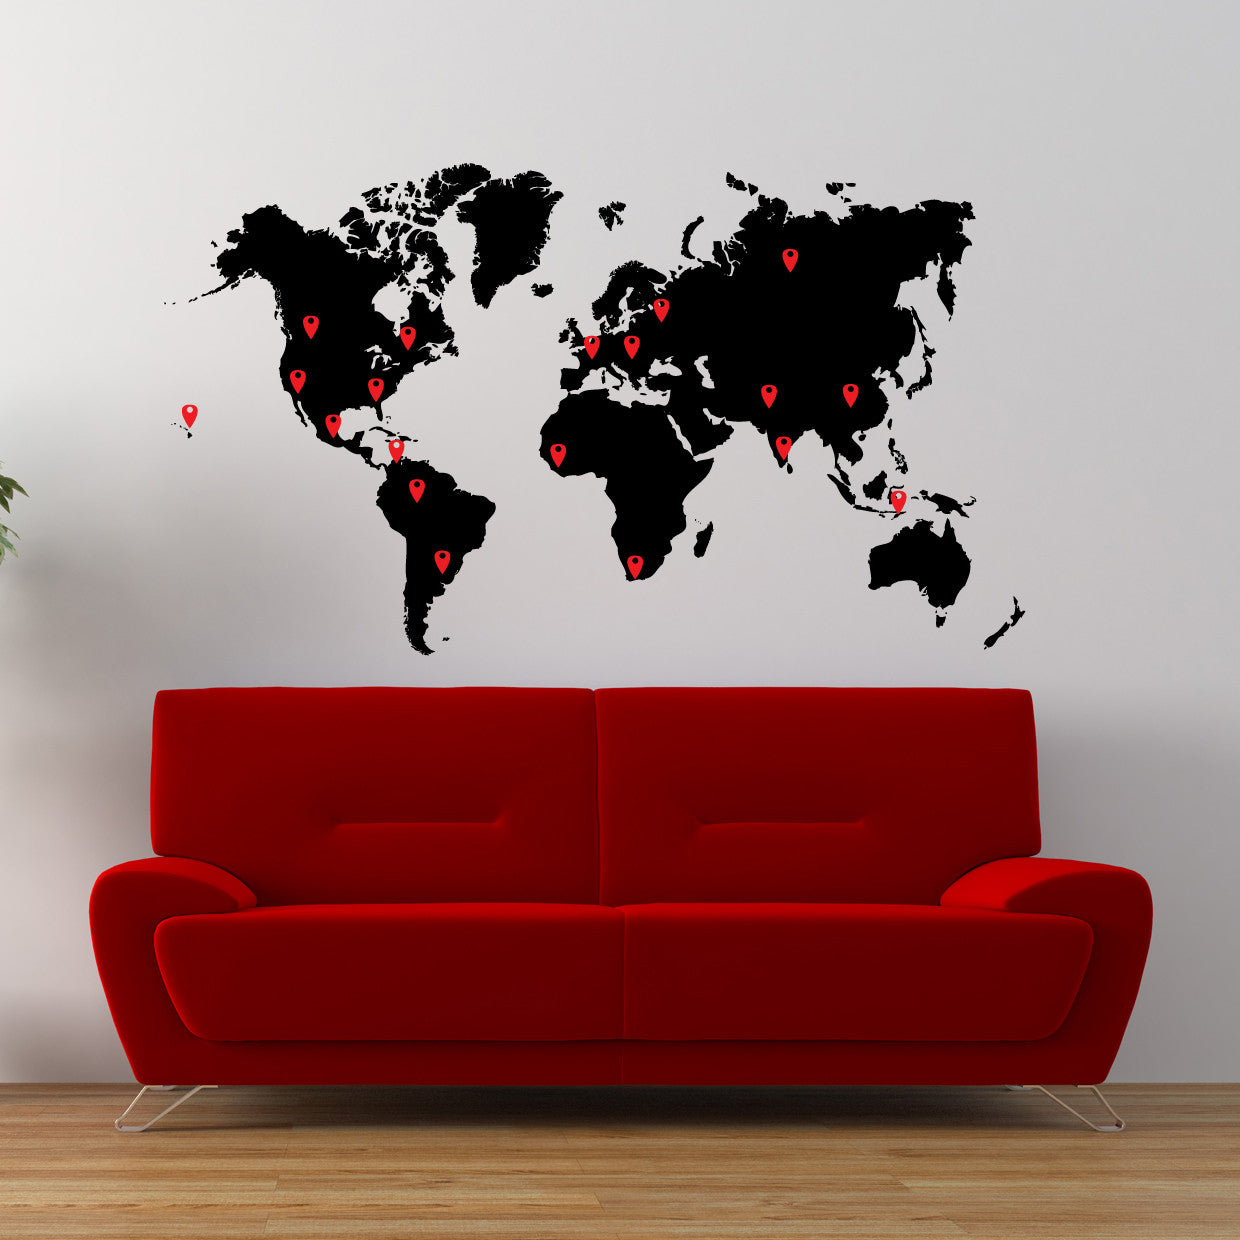 Map Of The World Decal.World Map Vinyl Wall Decal World Map With Pins